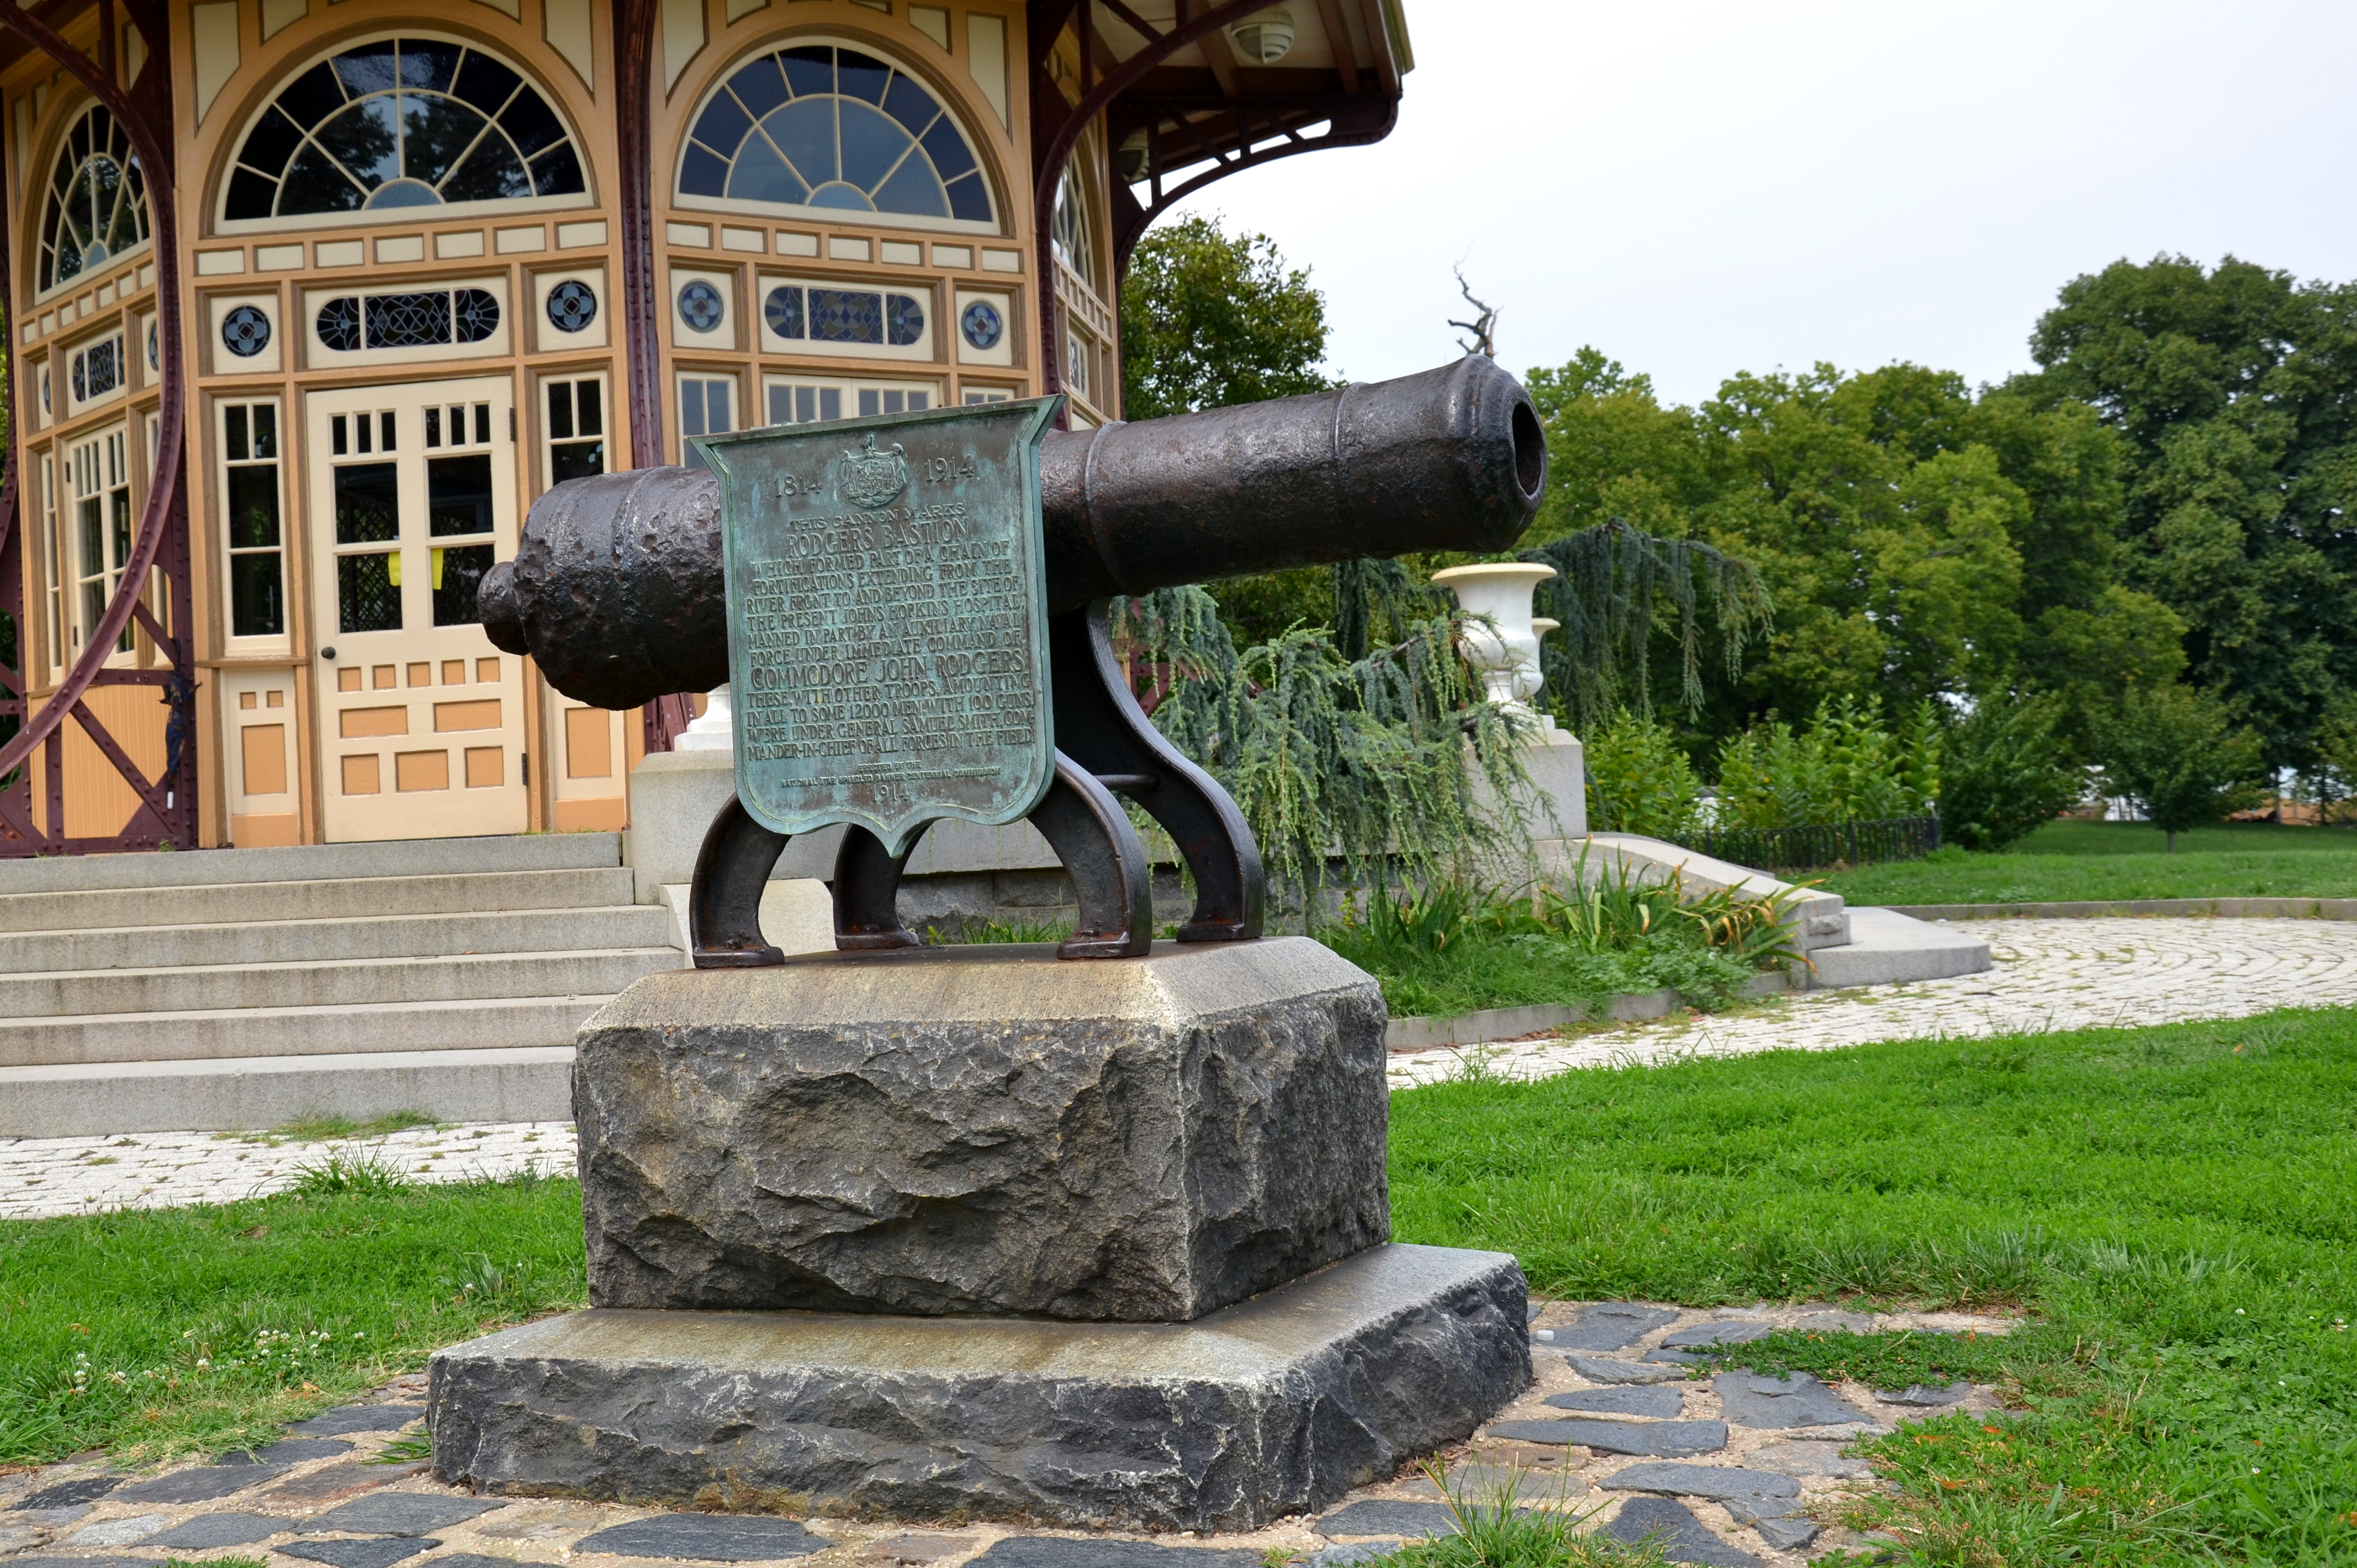 Cannon From Rodgers Bastion During the War of 1812